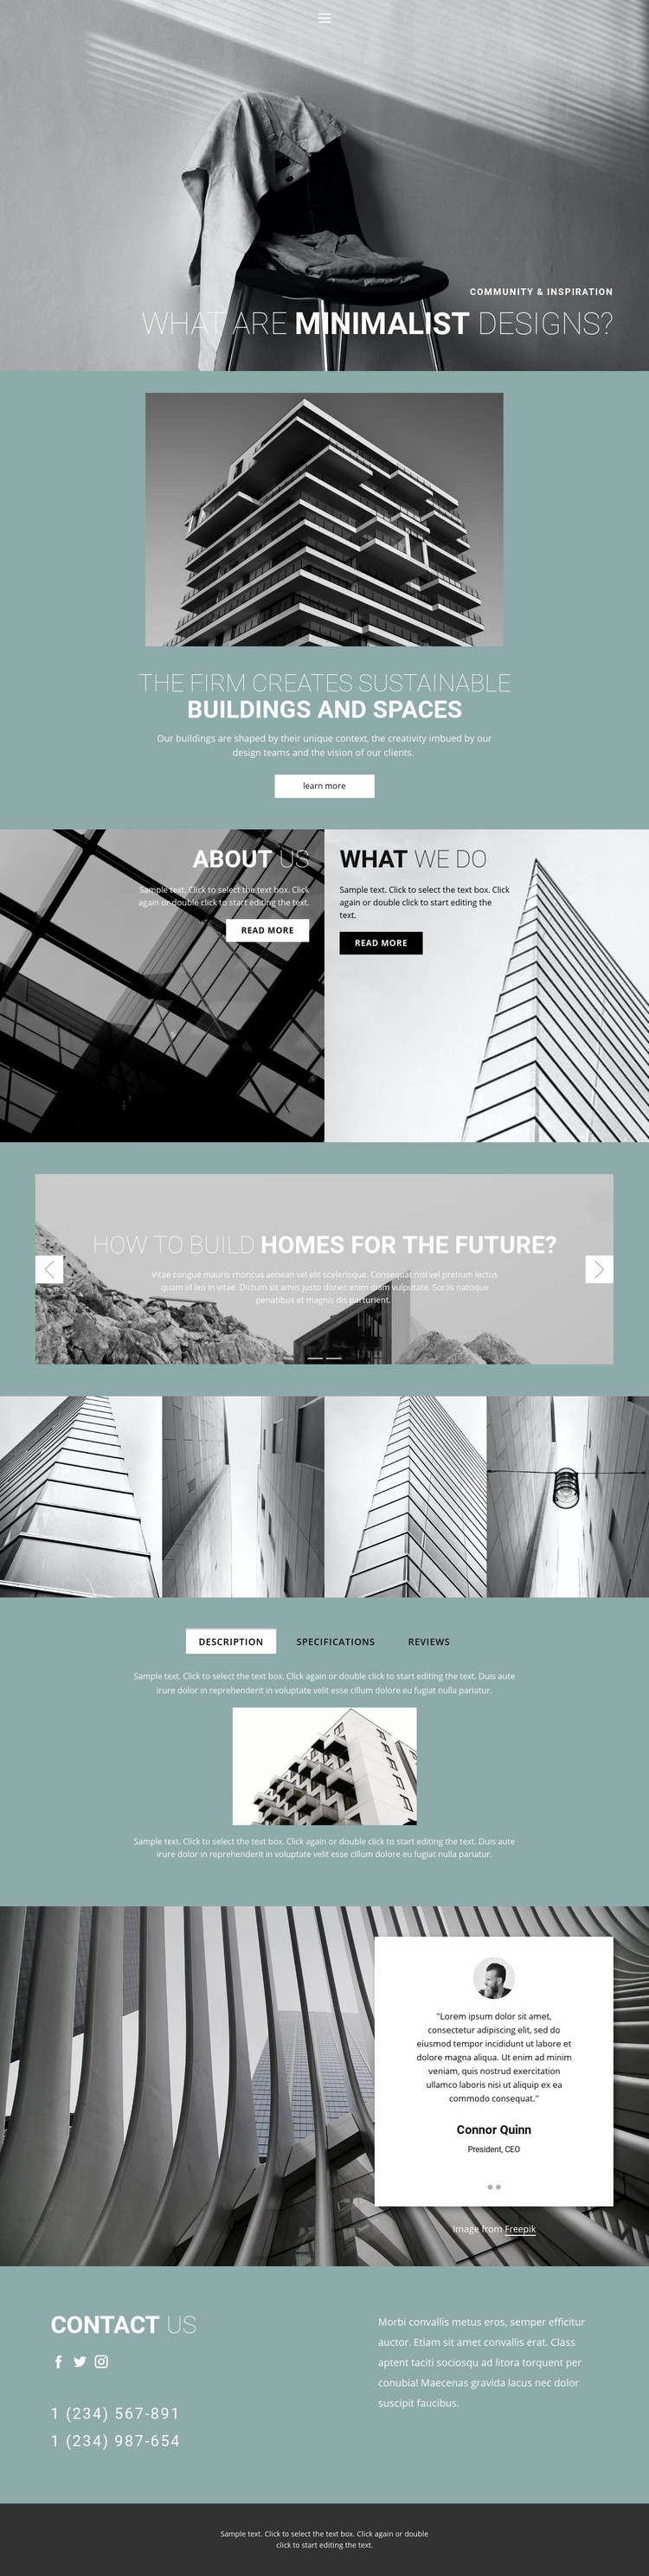 Perfect architecture ideas Html Code Example